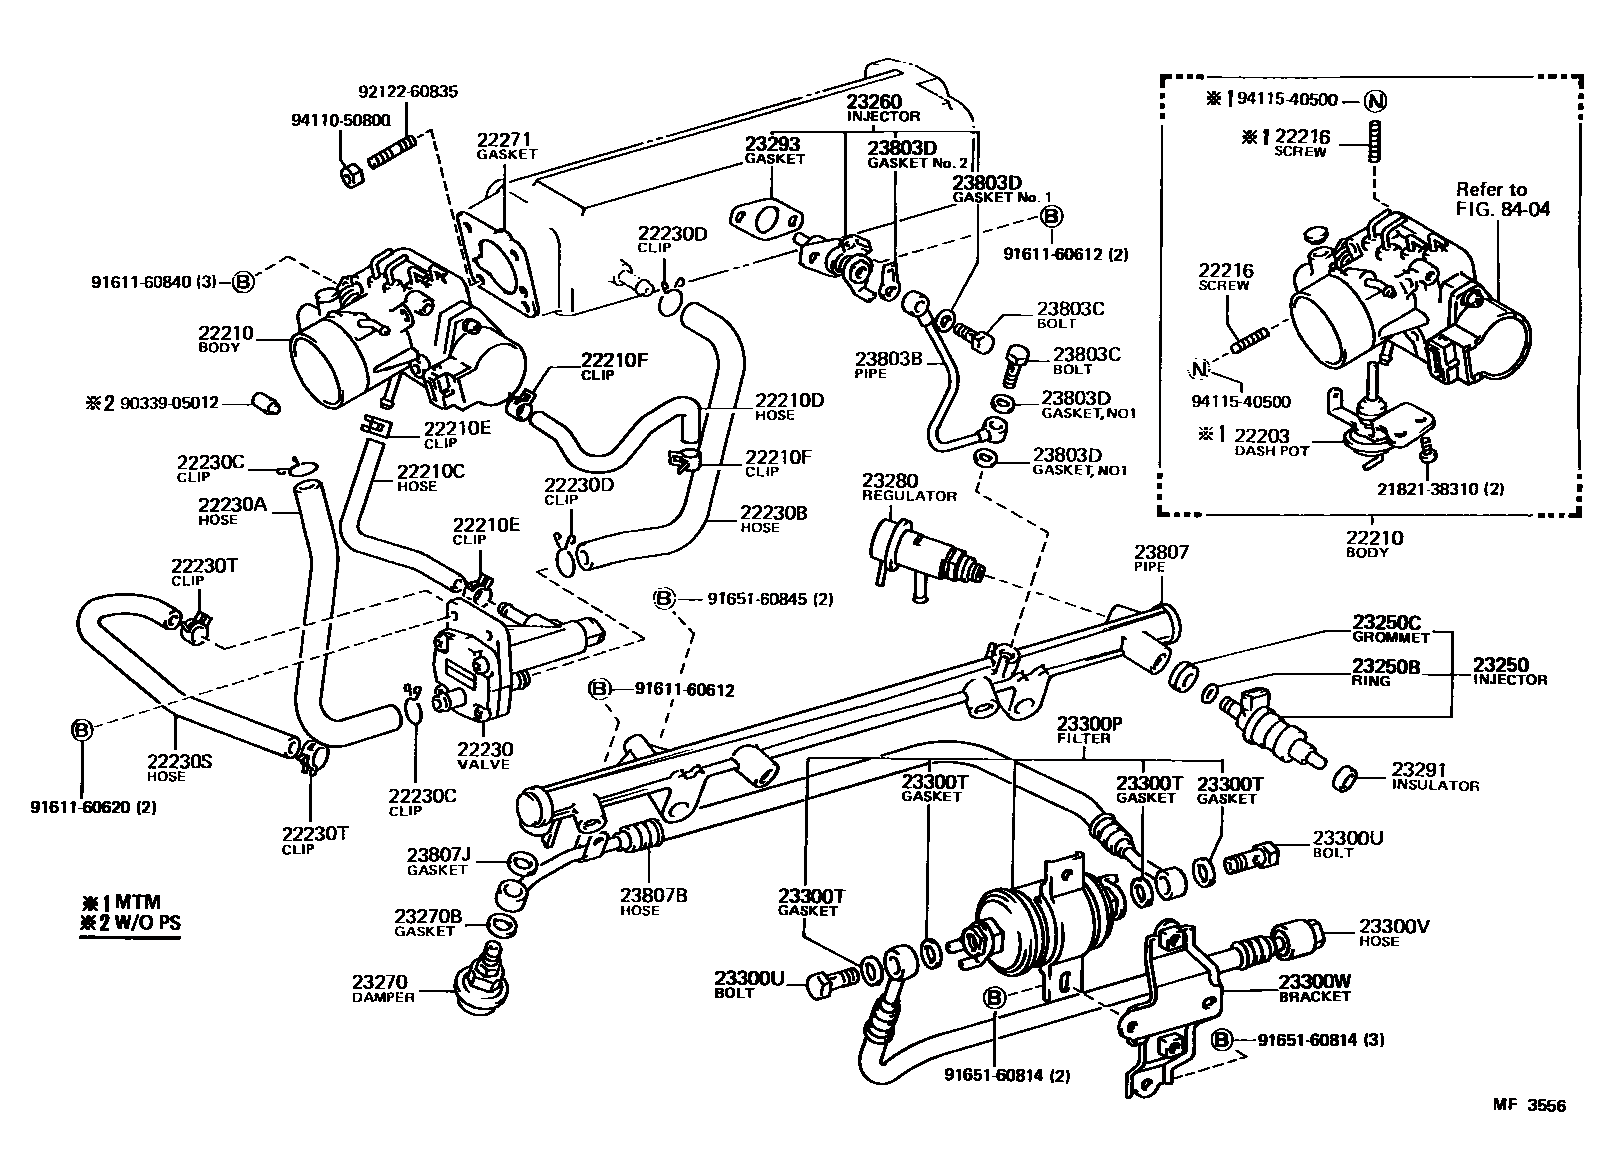 88436d1339281453 22re coolant hoses 1st gen 4runner fuel injection diagram?w=2000 89 toyota 22re efi diagram best wiring library